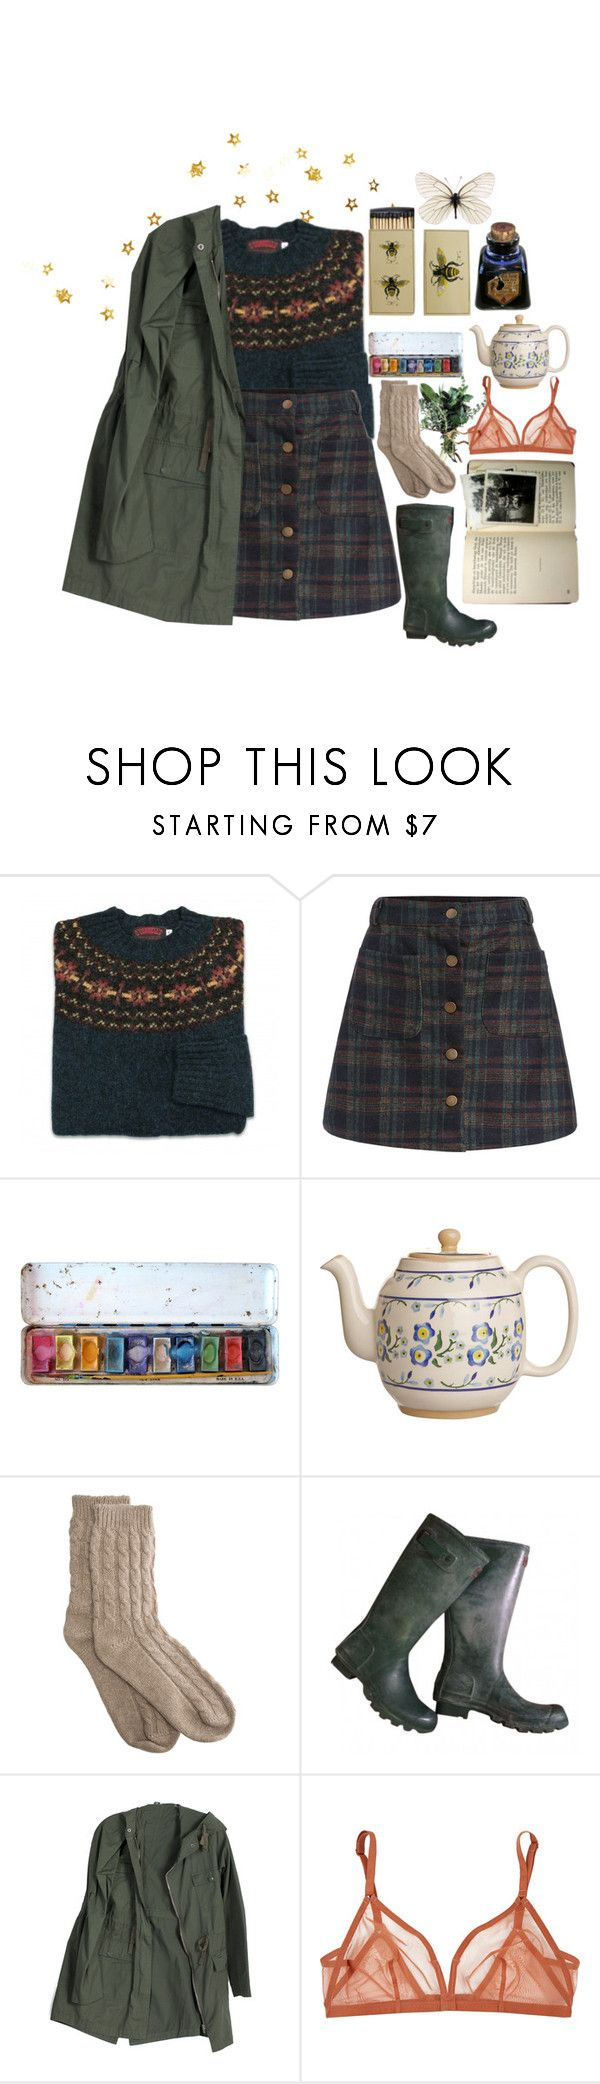 """""""days in the forest"""" by hobojuice ❤ liked on Polyvore featuring Bamford, Eres and vintage"""